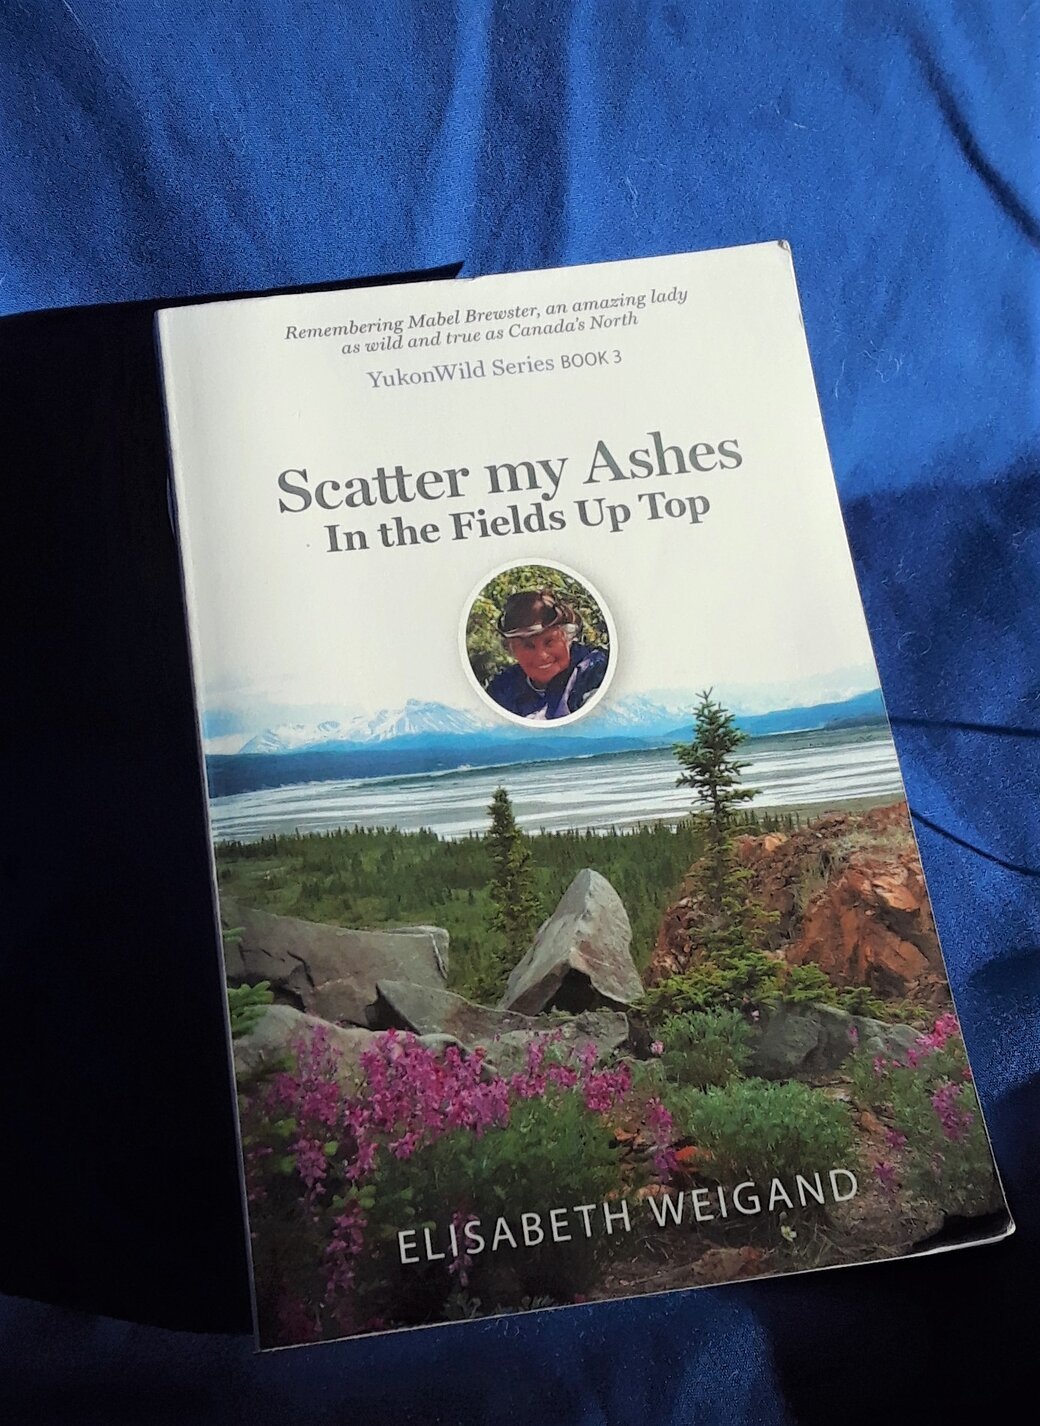 My friend Mabel Brewster. Memoir. Remebering an amazing woman as true and wild as Canada's North.